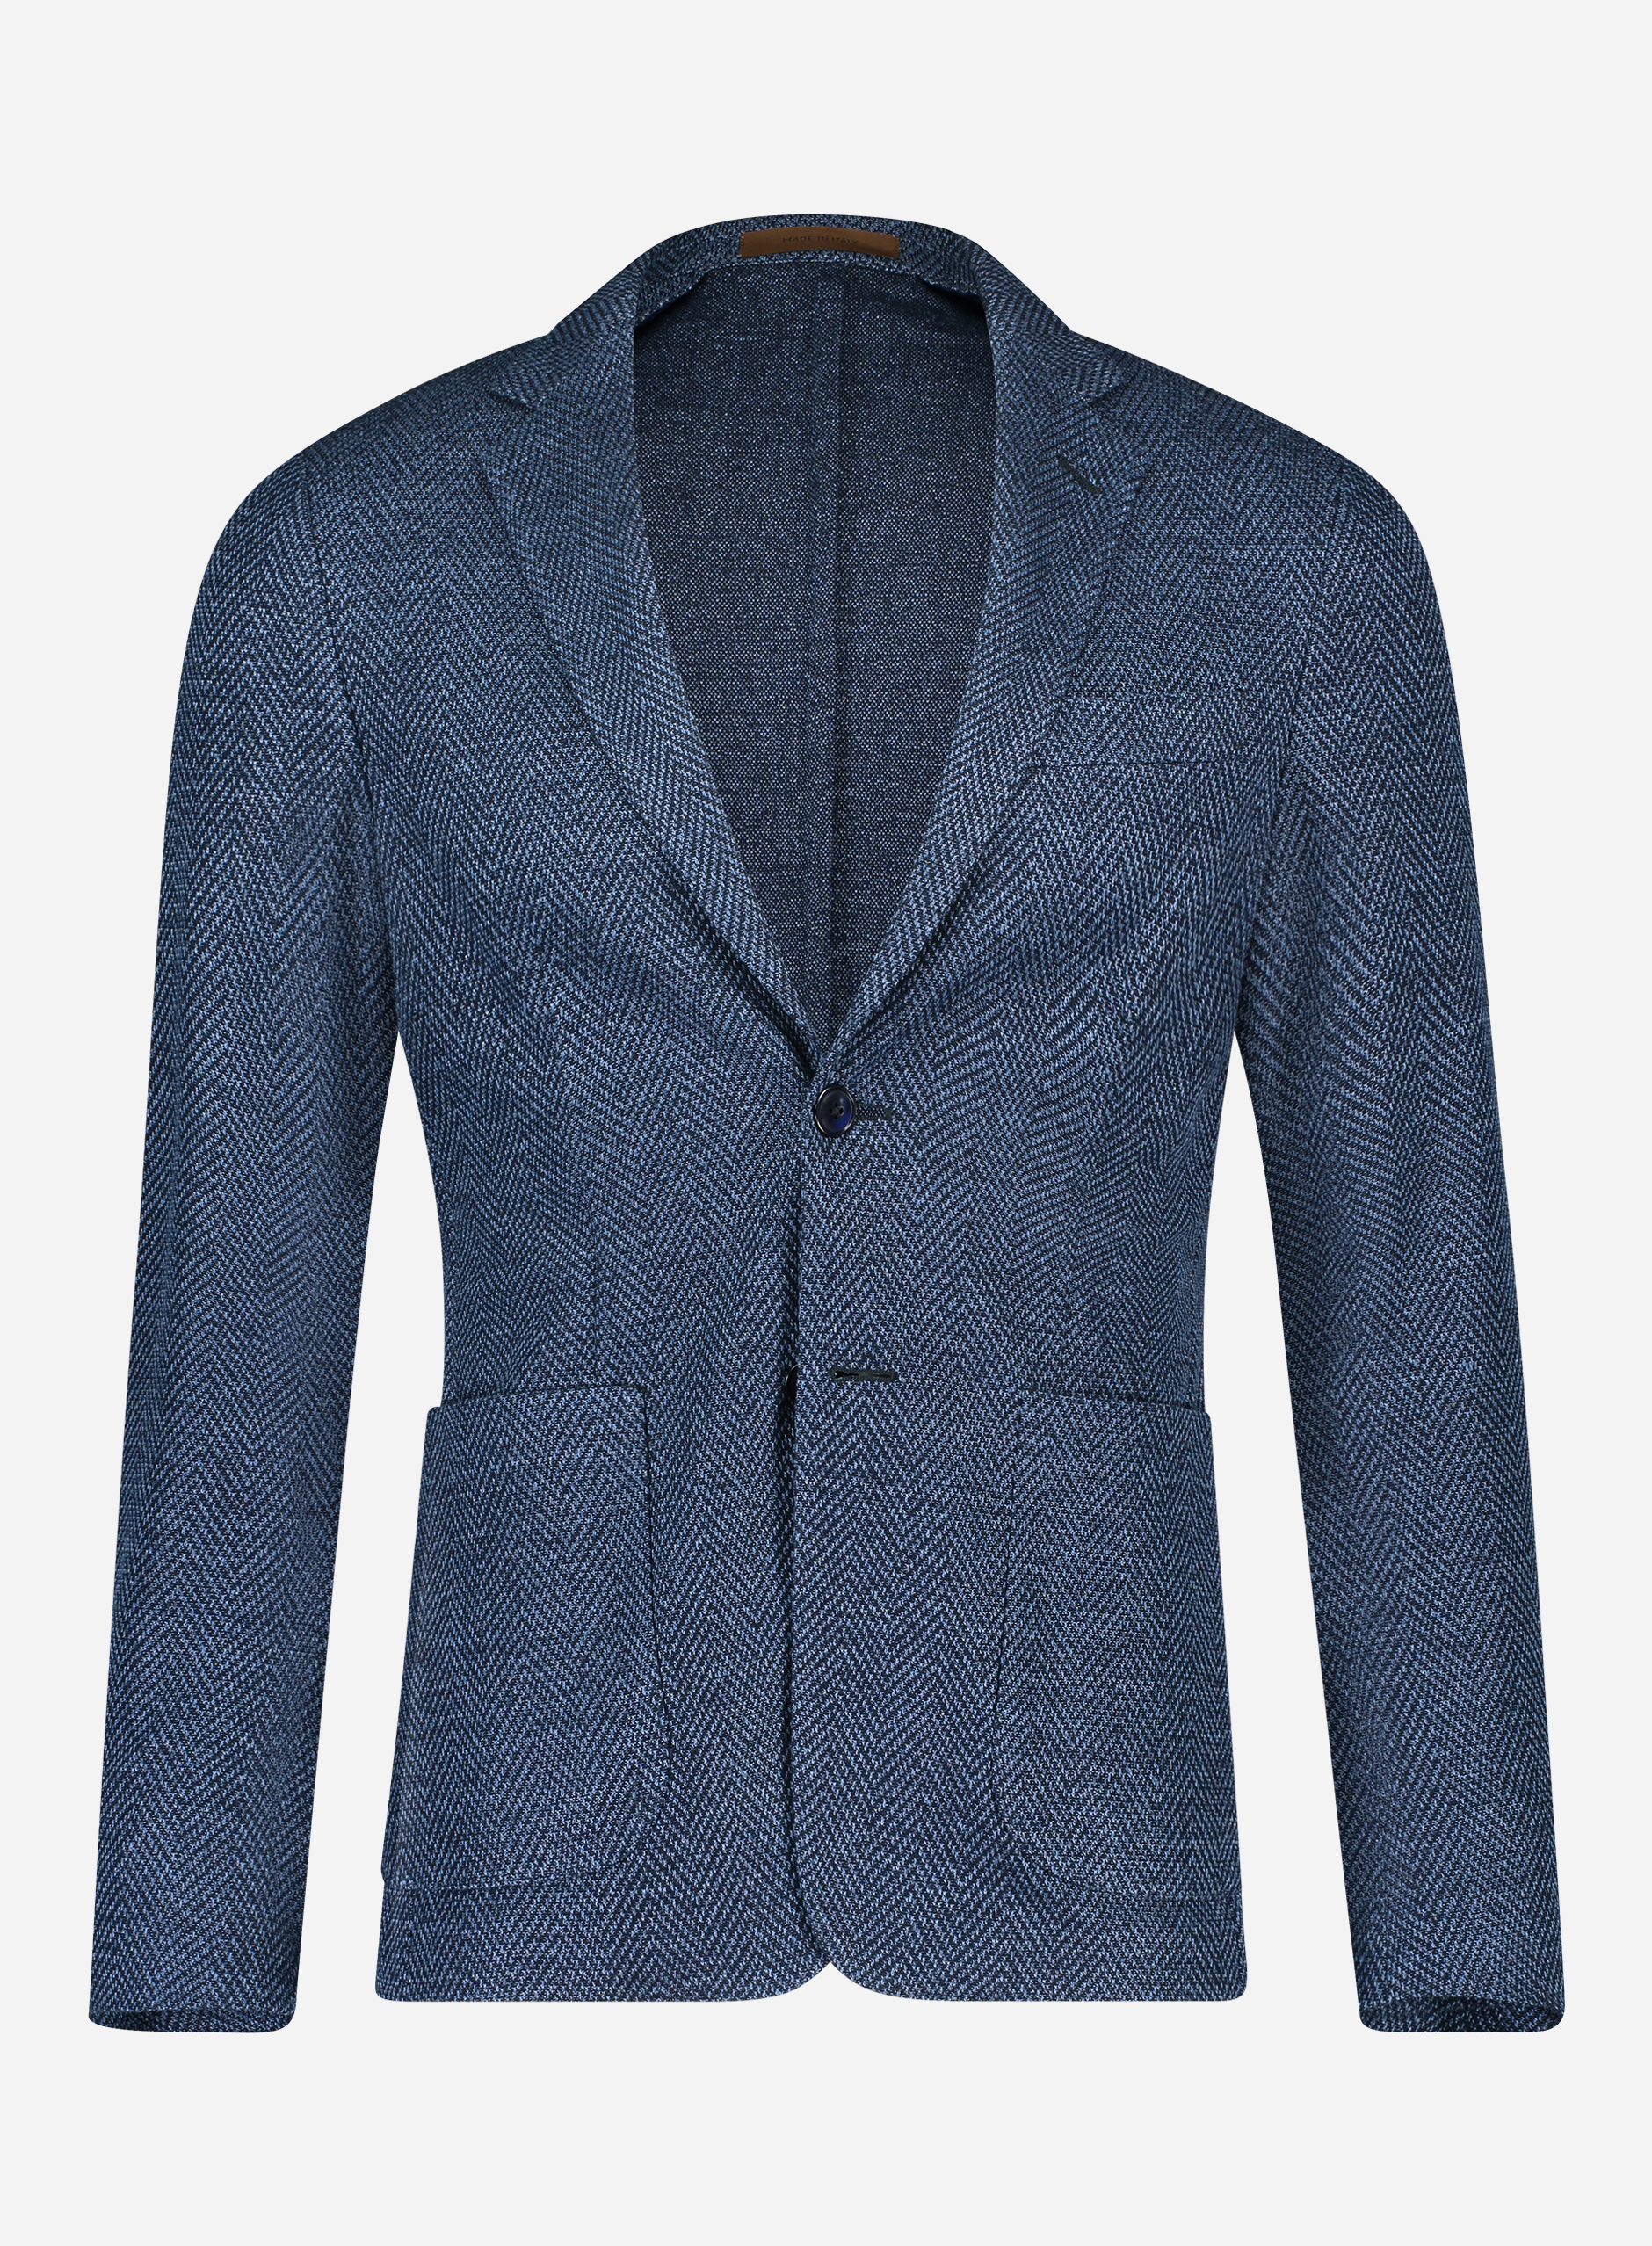 Corneliani Slim-fit ID jasje in linnen-wol blend Marine